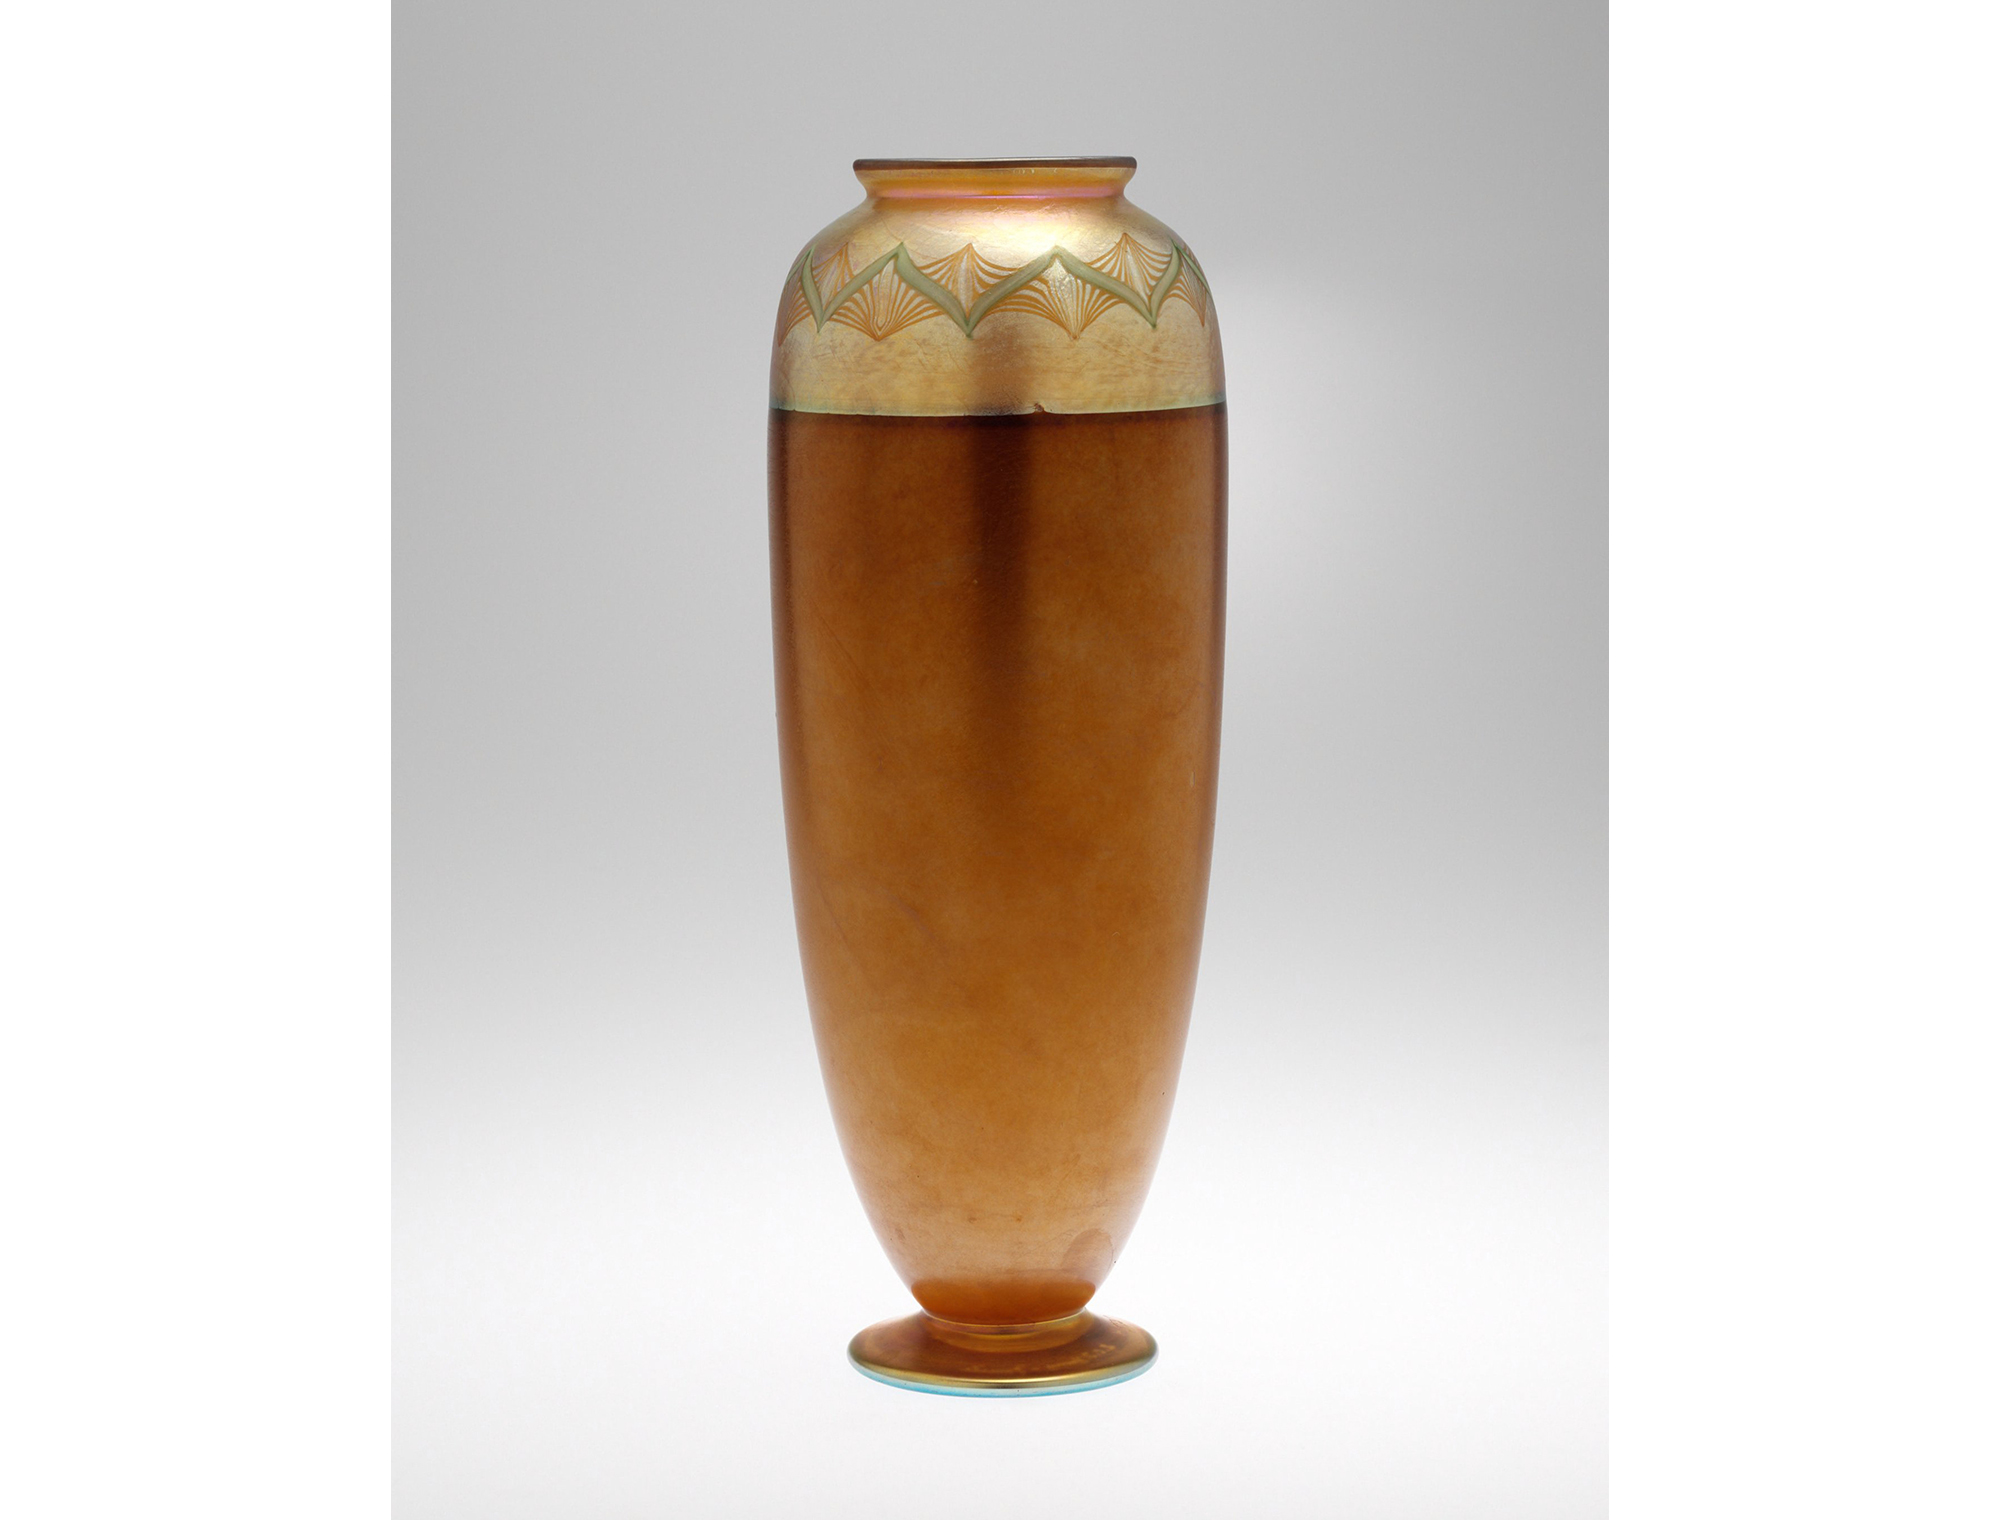 Vase, Bronze. Herbert F. Johnson Museum of Art, Cornell University, 64.0880.